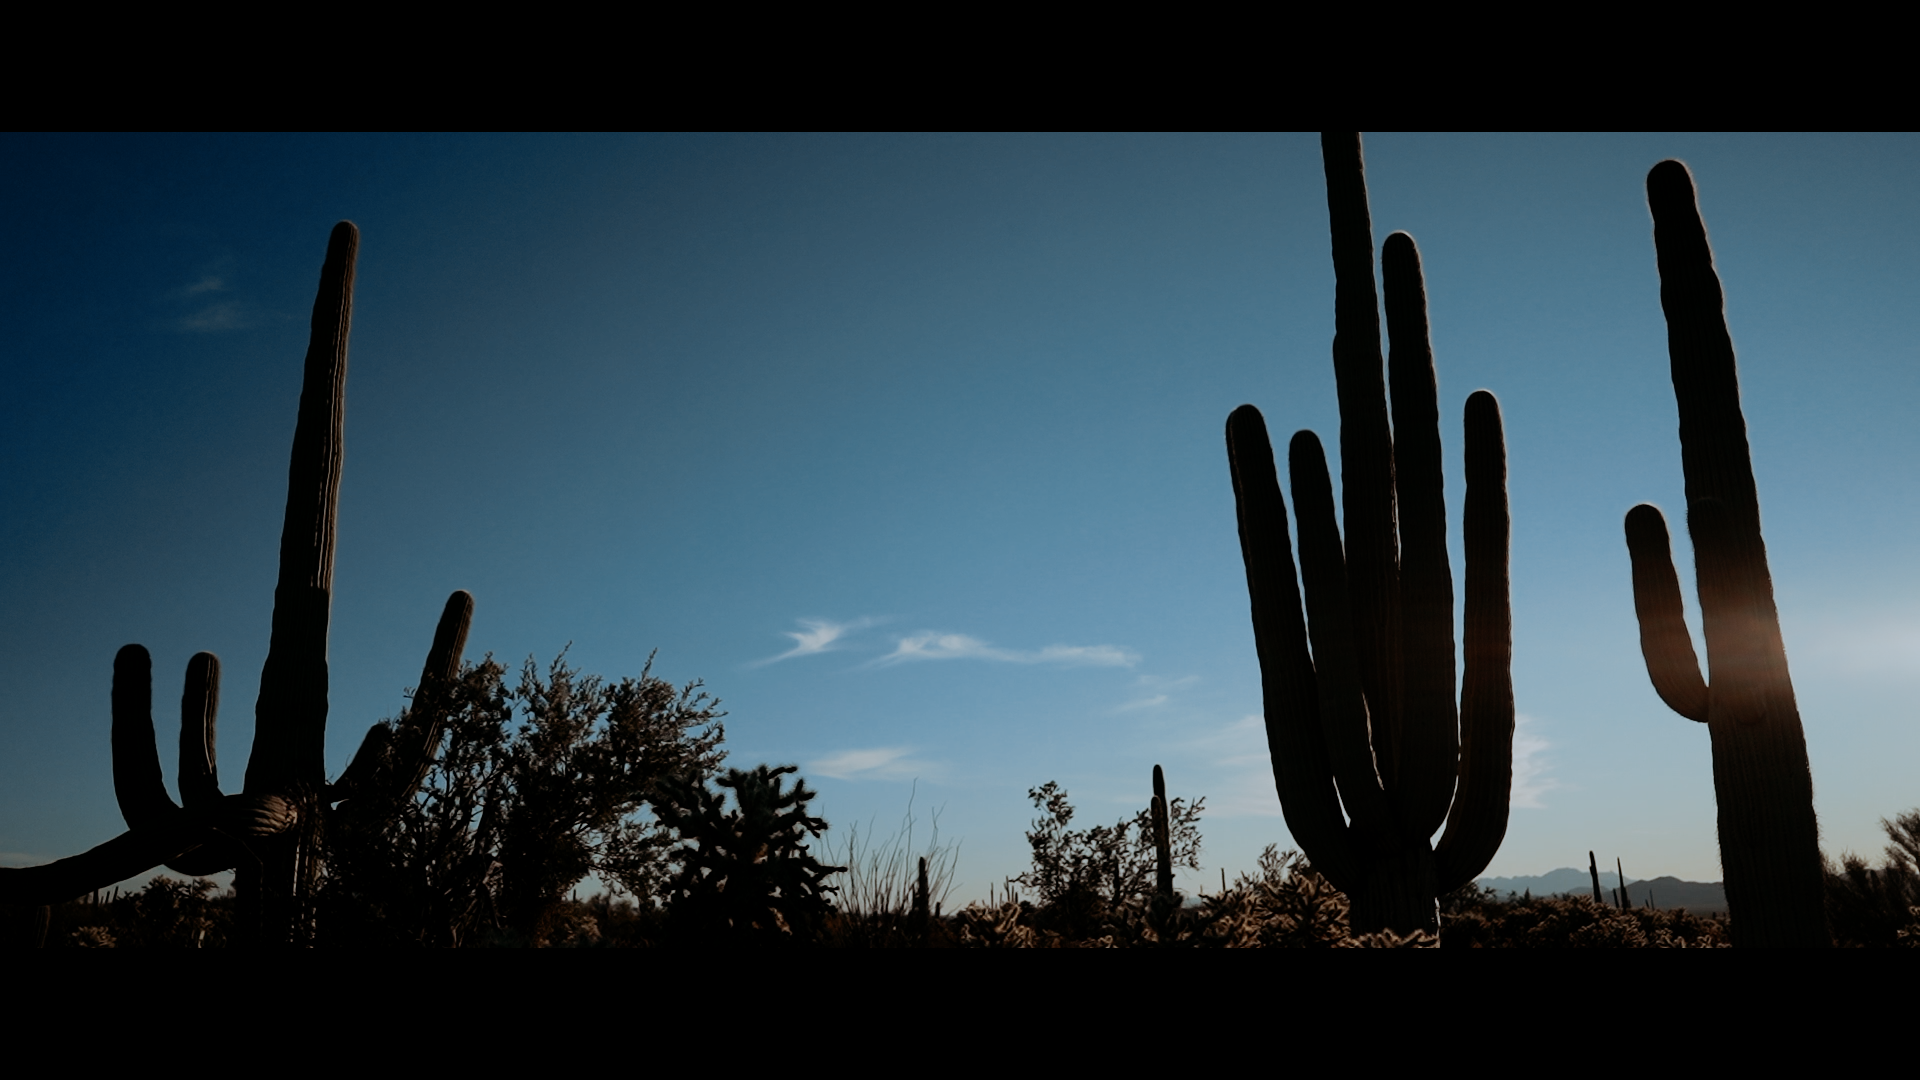 Brooke + Cole | Tucson, Arizona | Saguaro National Park